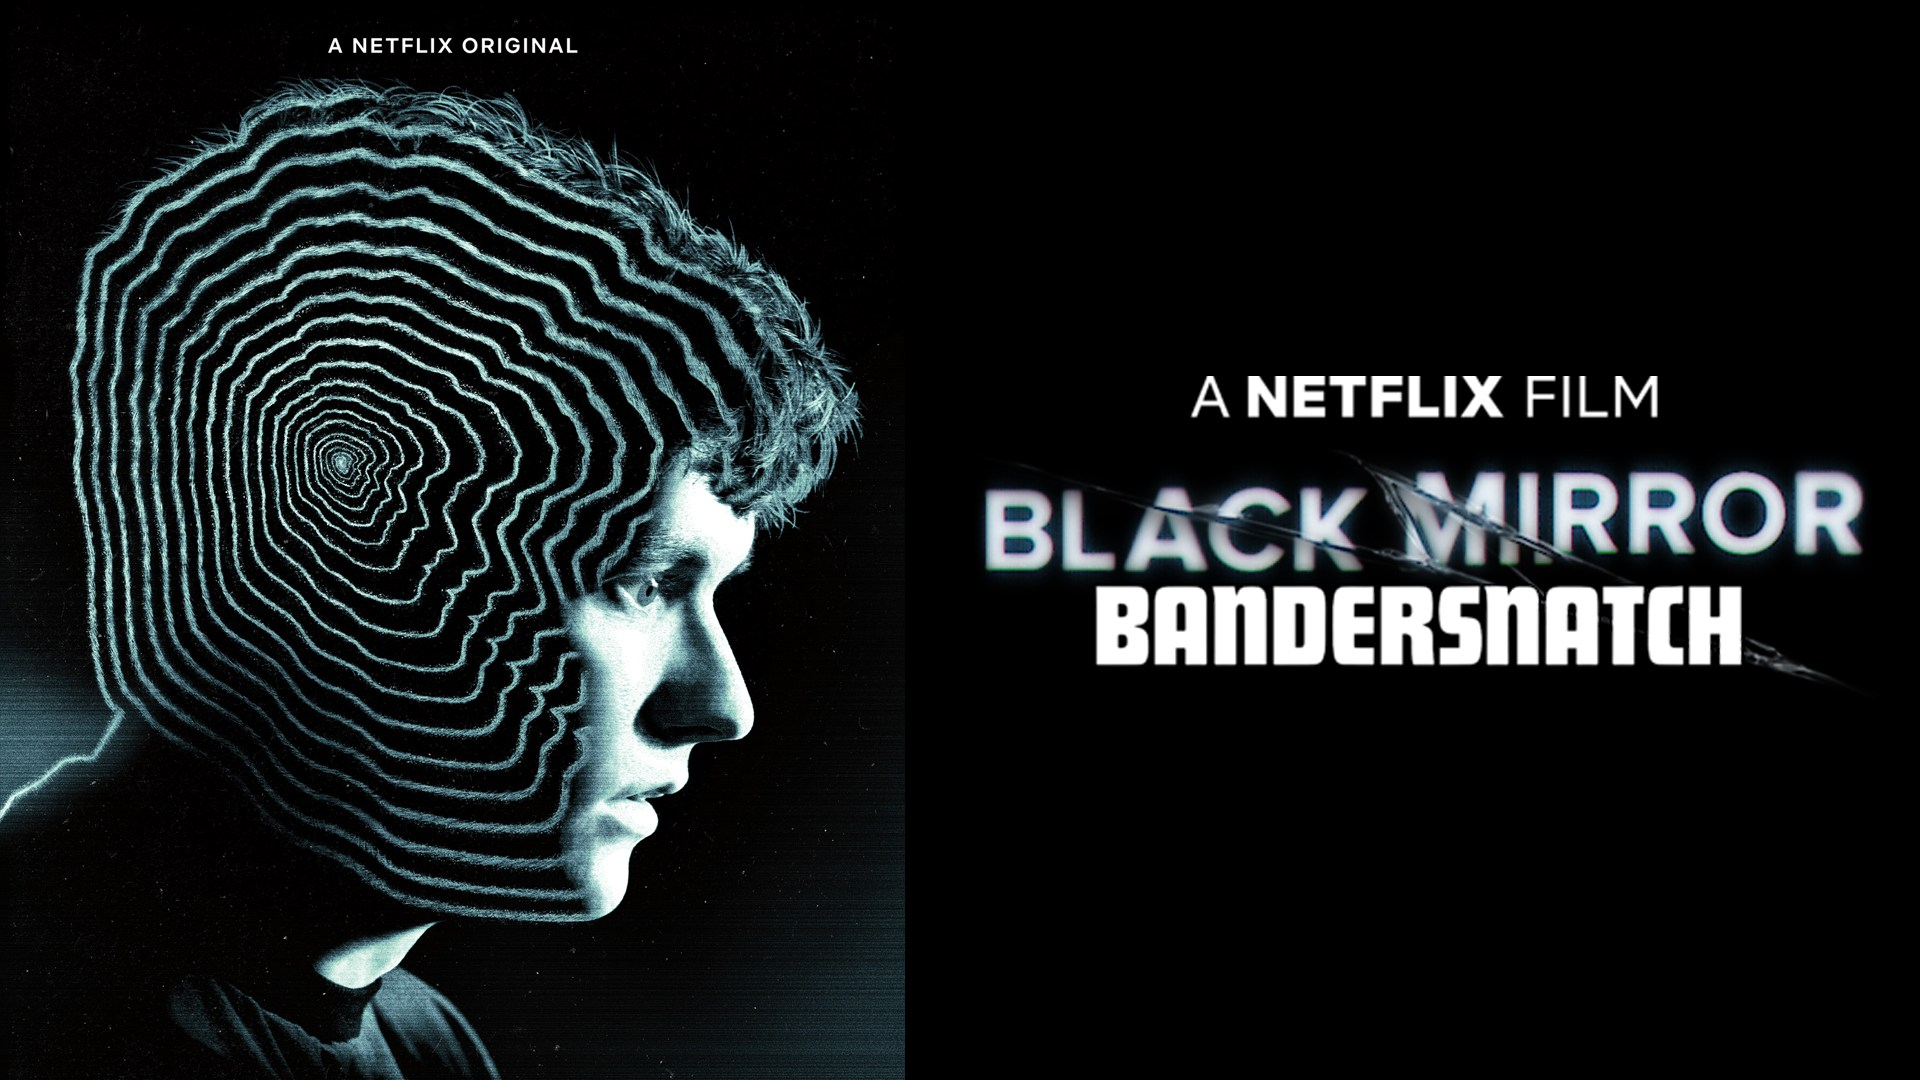 Netflix İnteraktif Filmi Black Mirror: Bandersnatch